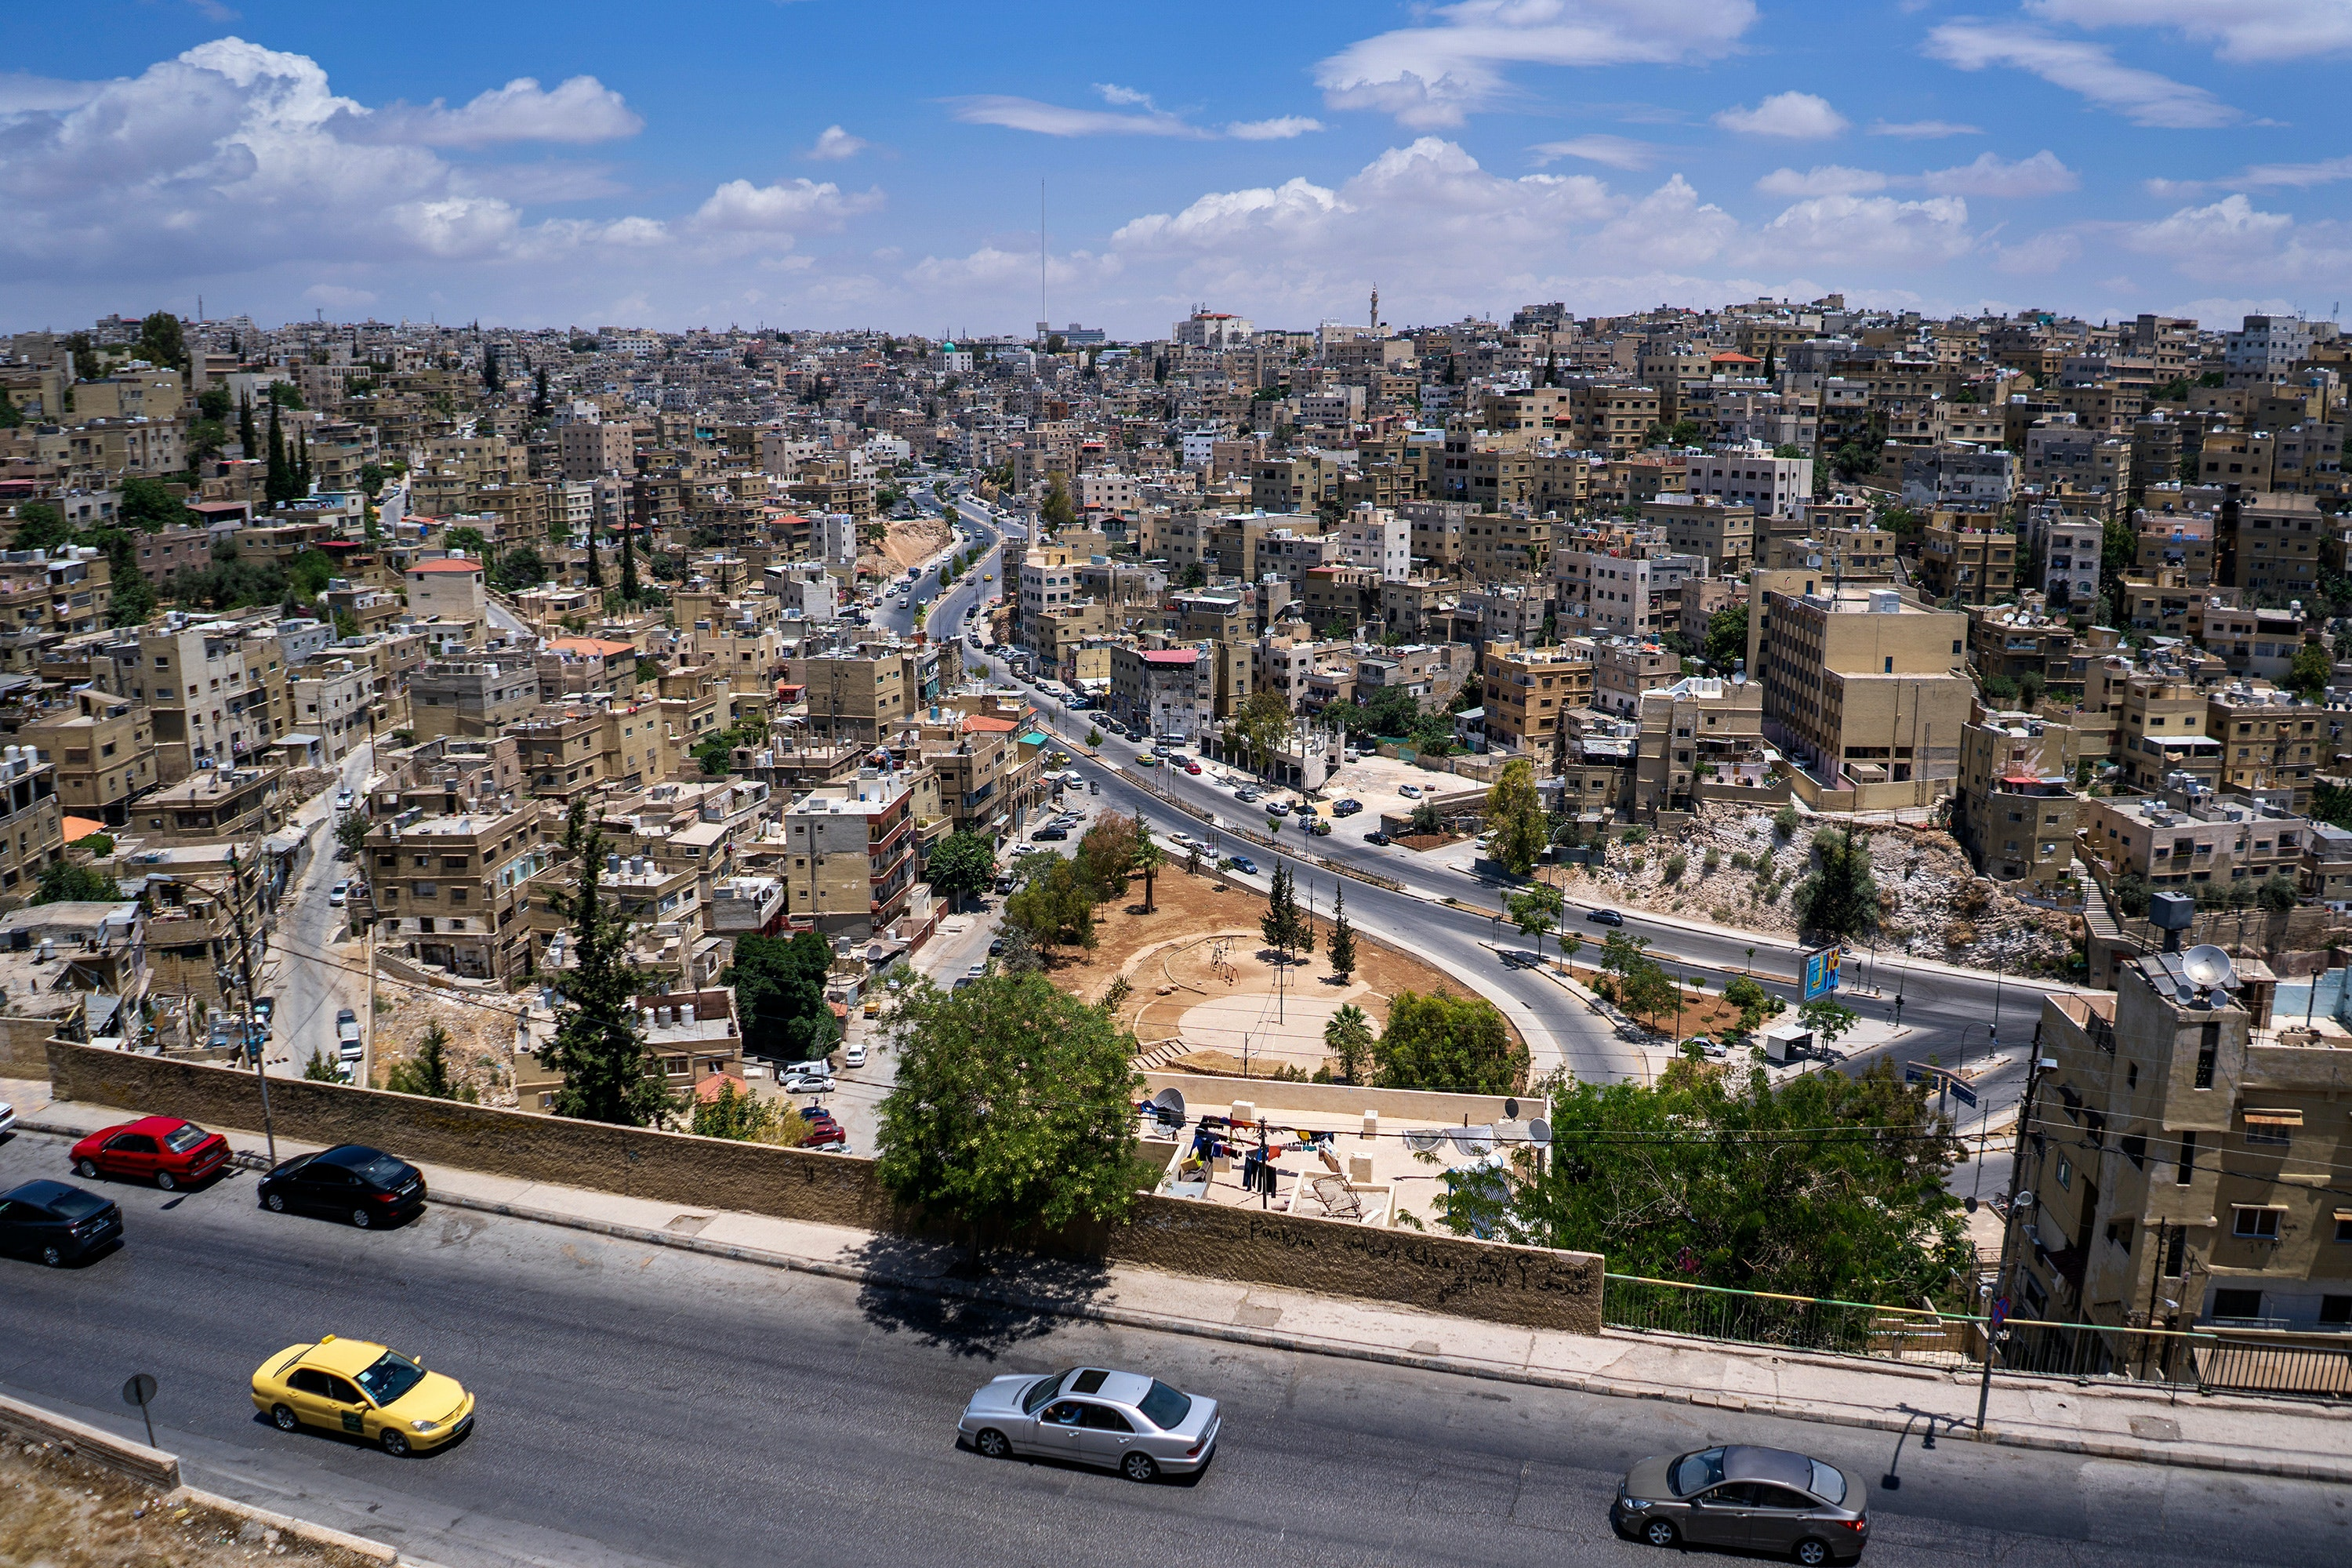 A view from above the city of Amman, Jordan.